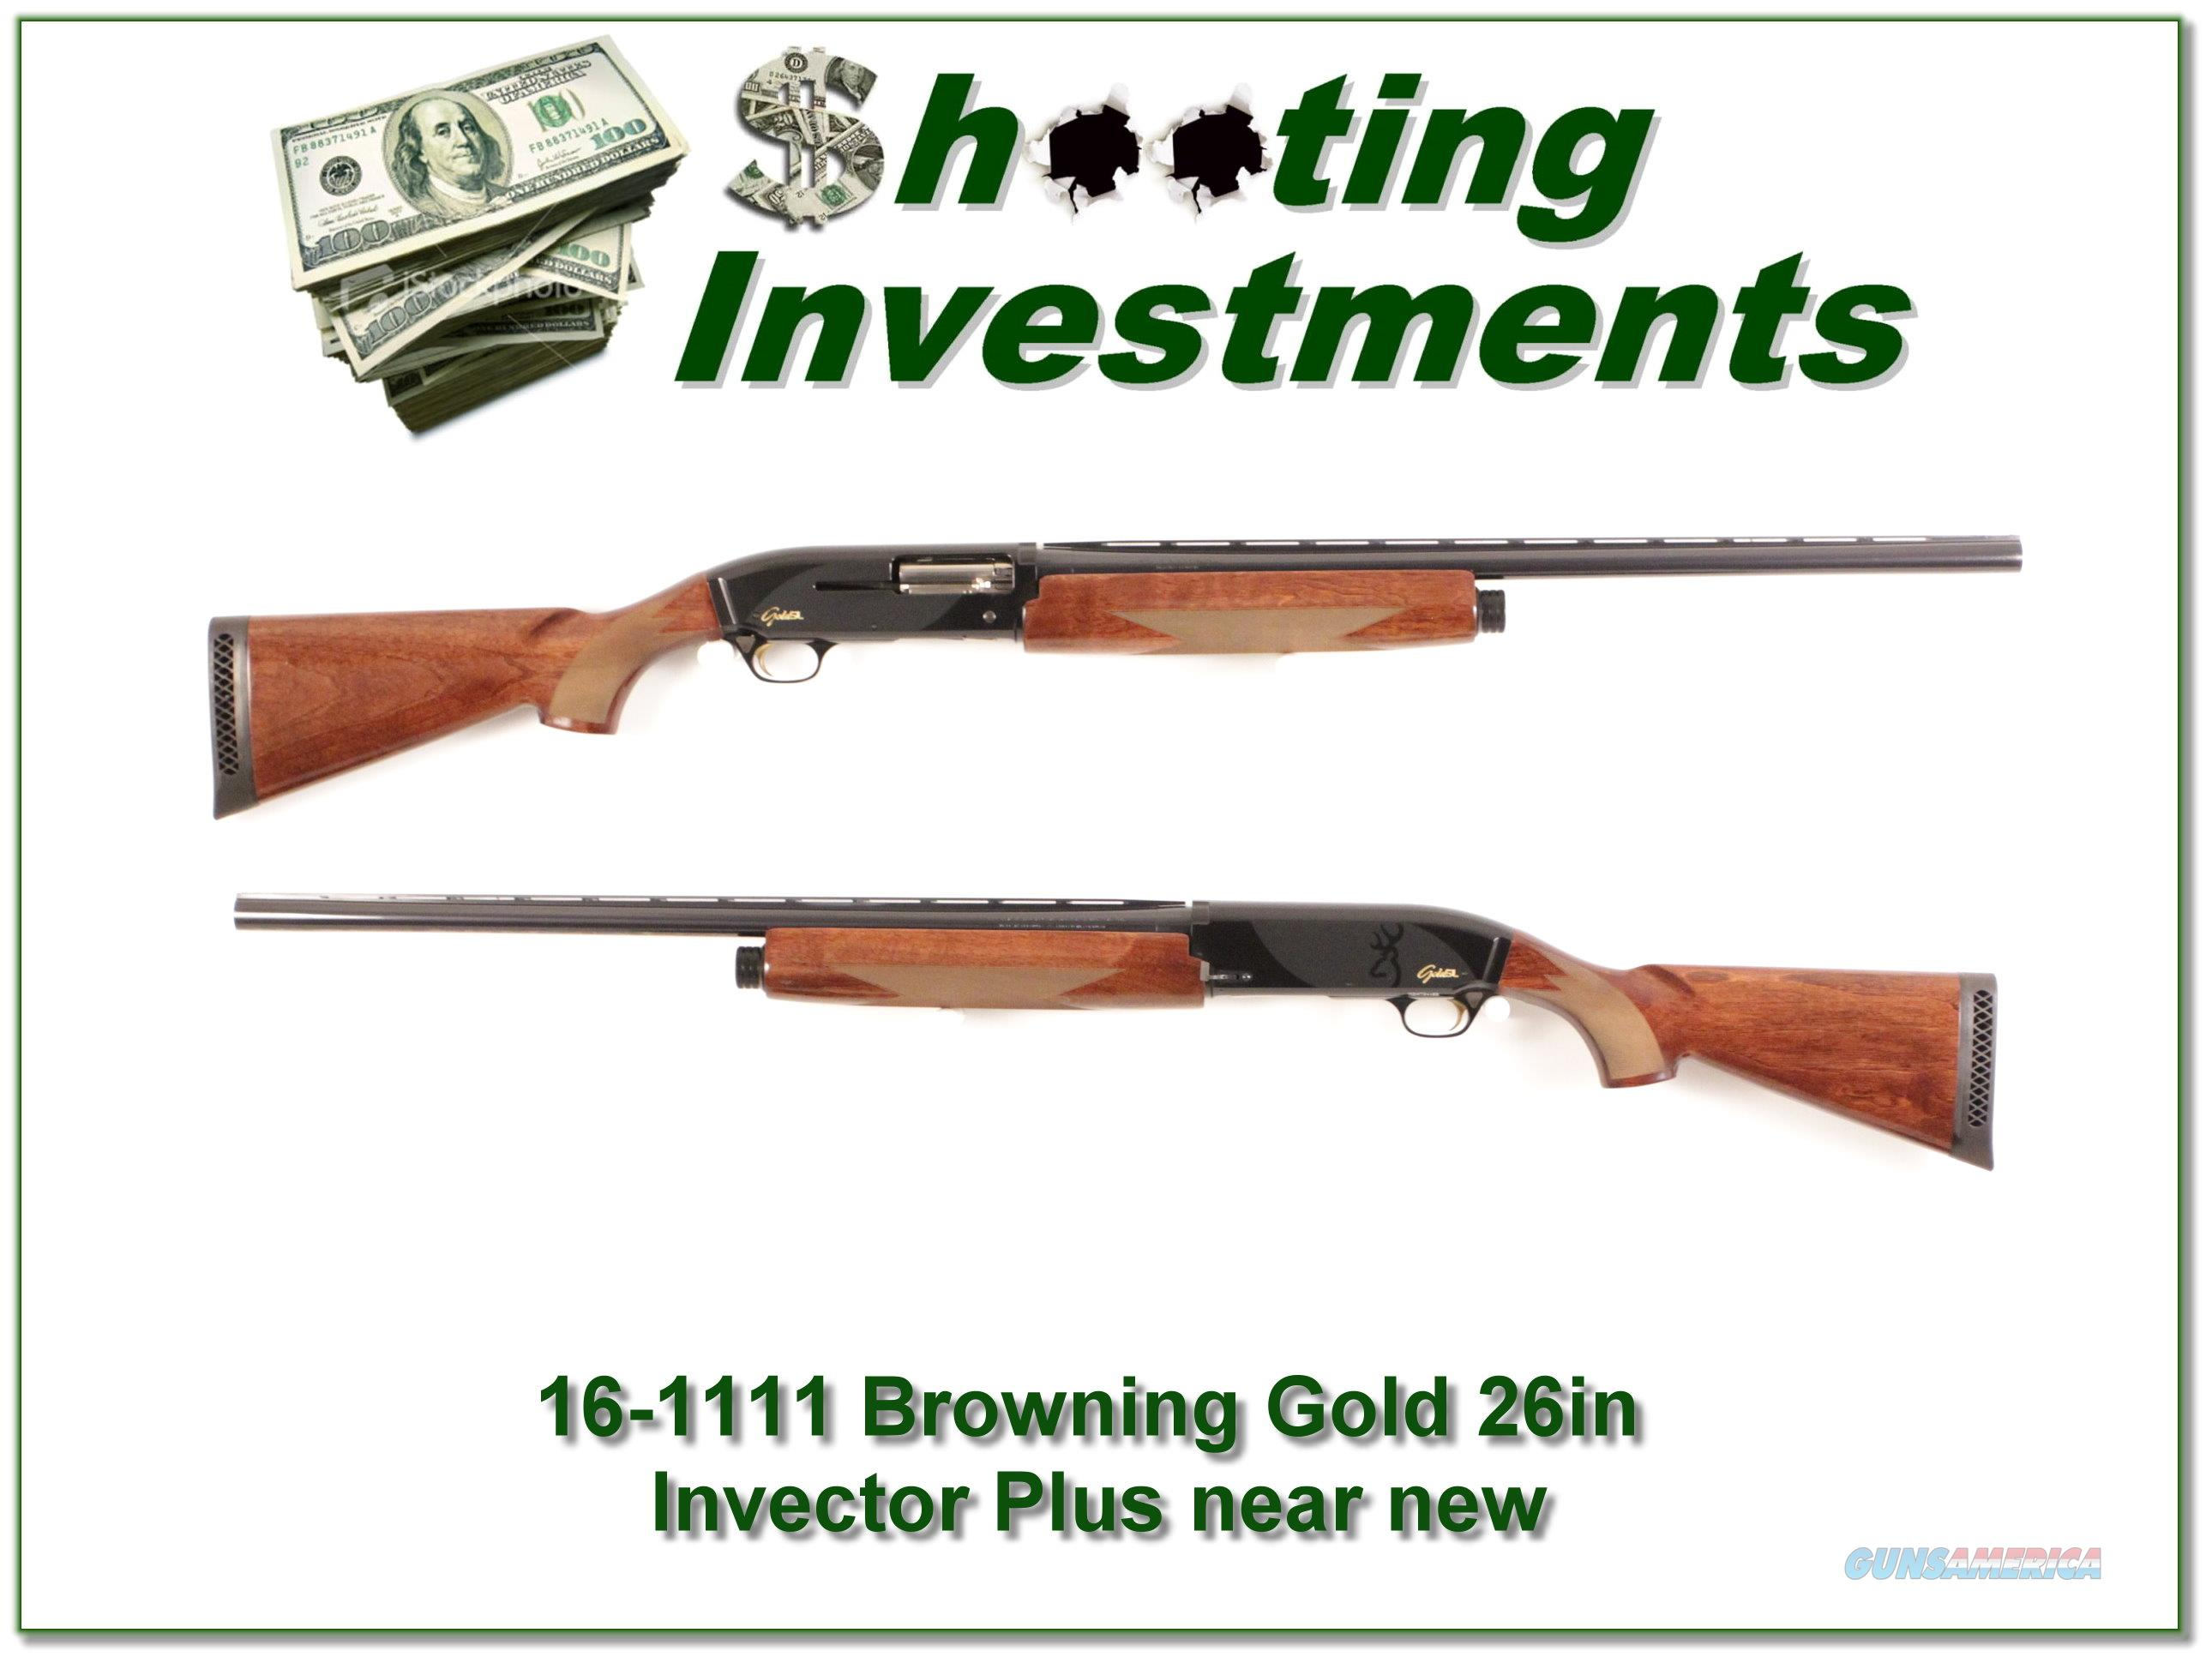 Browning 12ga Gold SL Super Lite Semi Auto Shotgun  Guns > Shotguns > Browning Shotguns > Autoloaders > Hunting